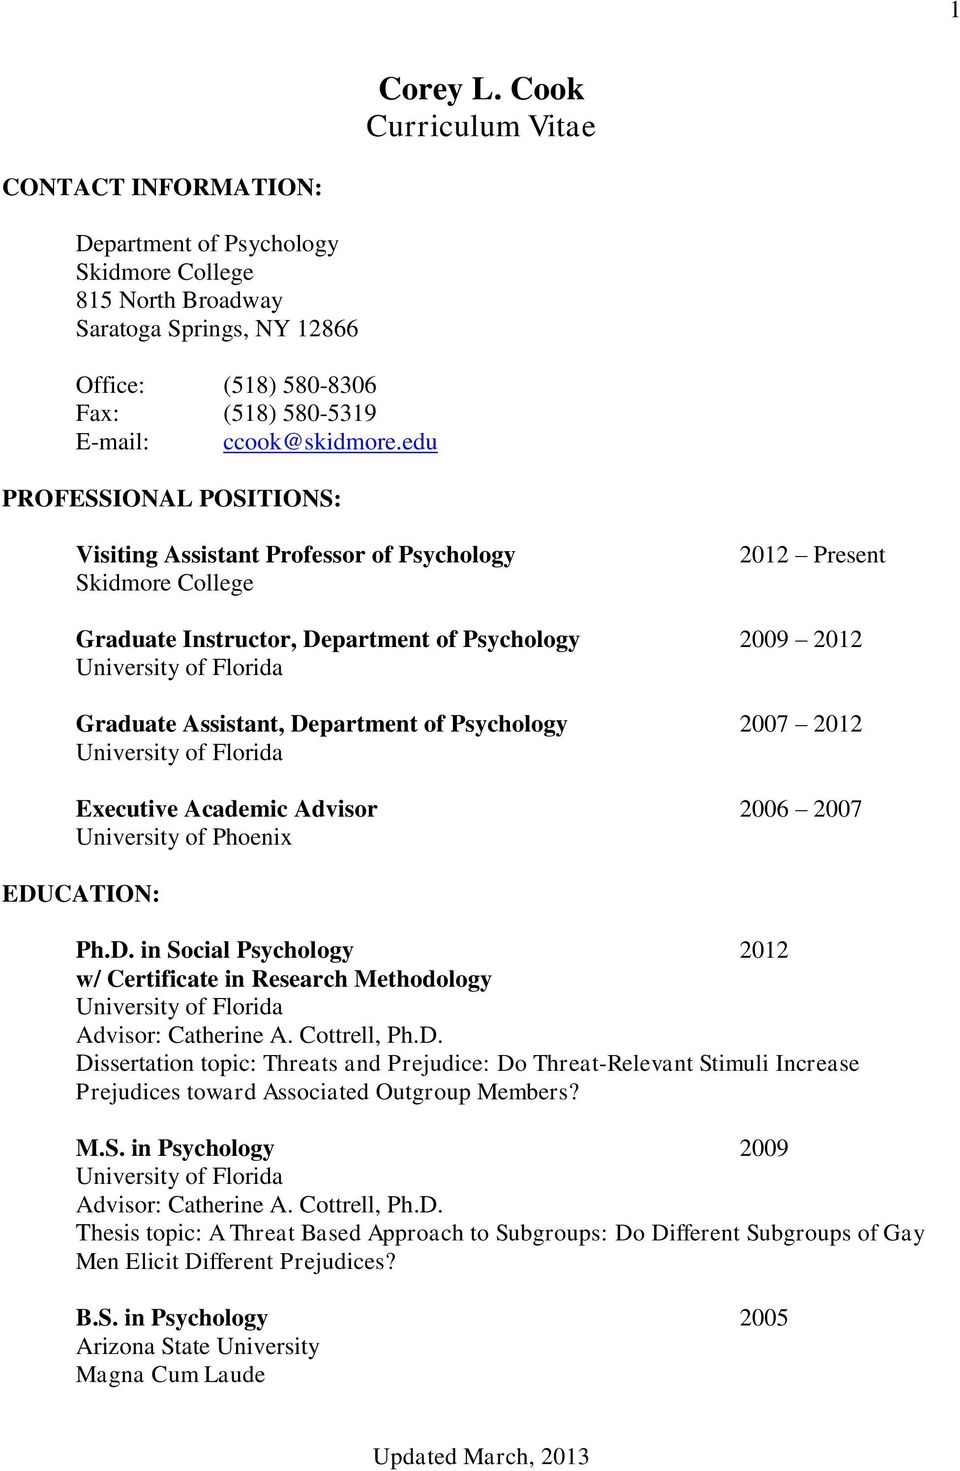 Executive Academic Advisor 2006 2007 University of Phoenix EDUCATION: Ph.D. in Social Psychology 2012 w/ Certificate in Research Methodology Advisor: Catherine A. Cottrell, Ph.D. Dissertation topic: Threats and Prejudice: Do Threat-Relevant Stimuli Increase Prejudices toward Associated Outgroup Members?